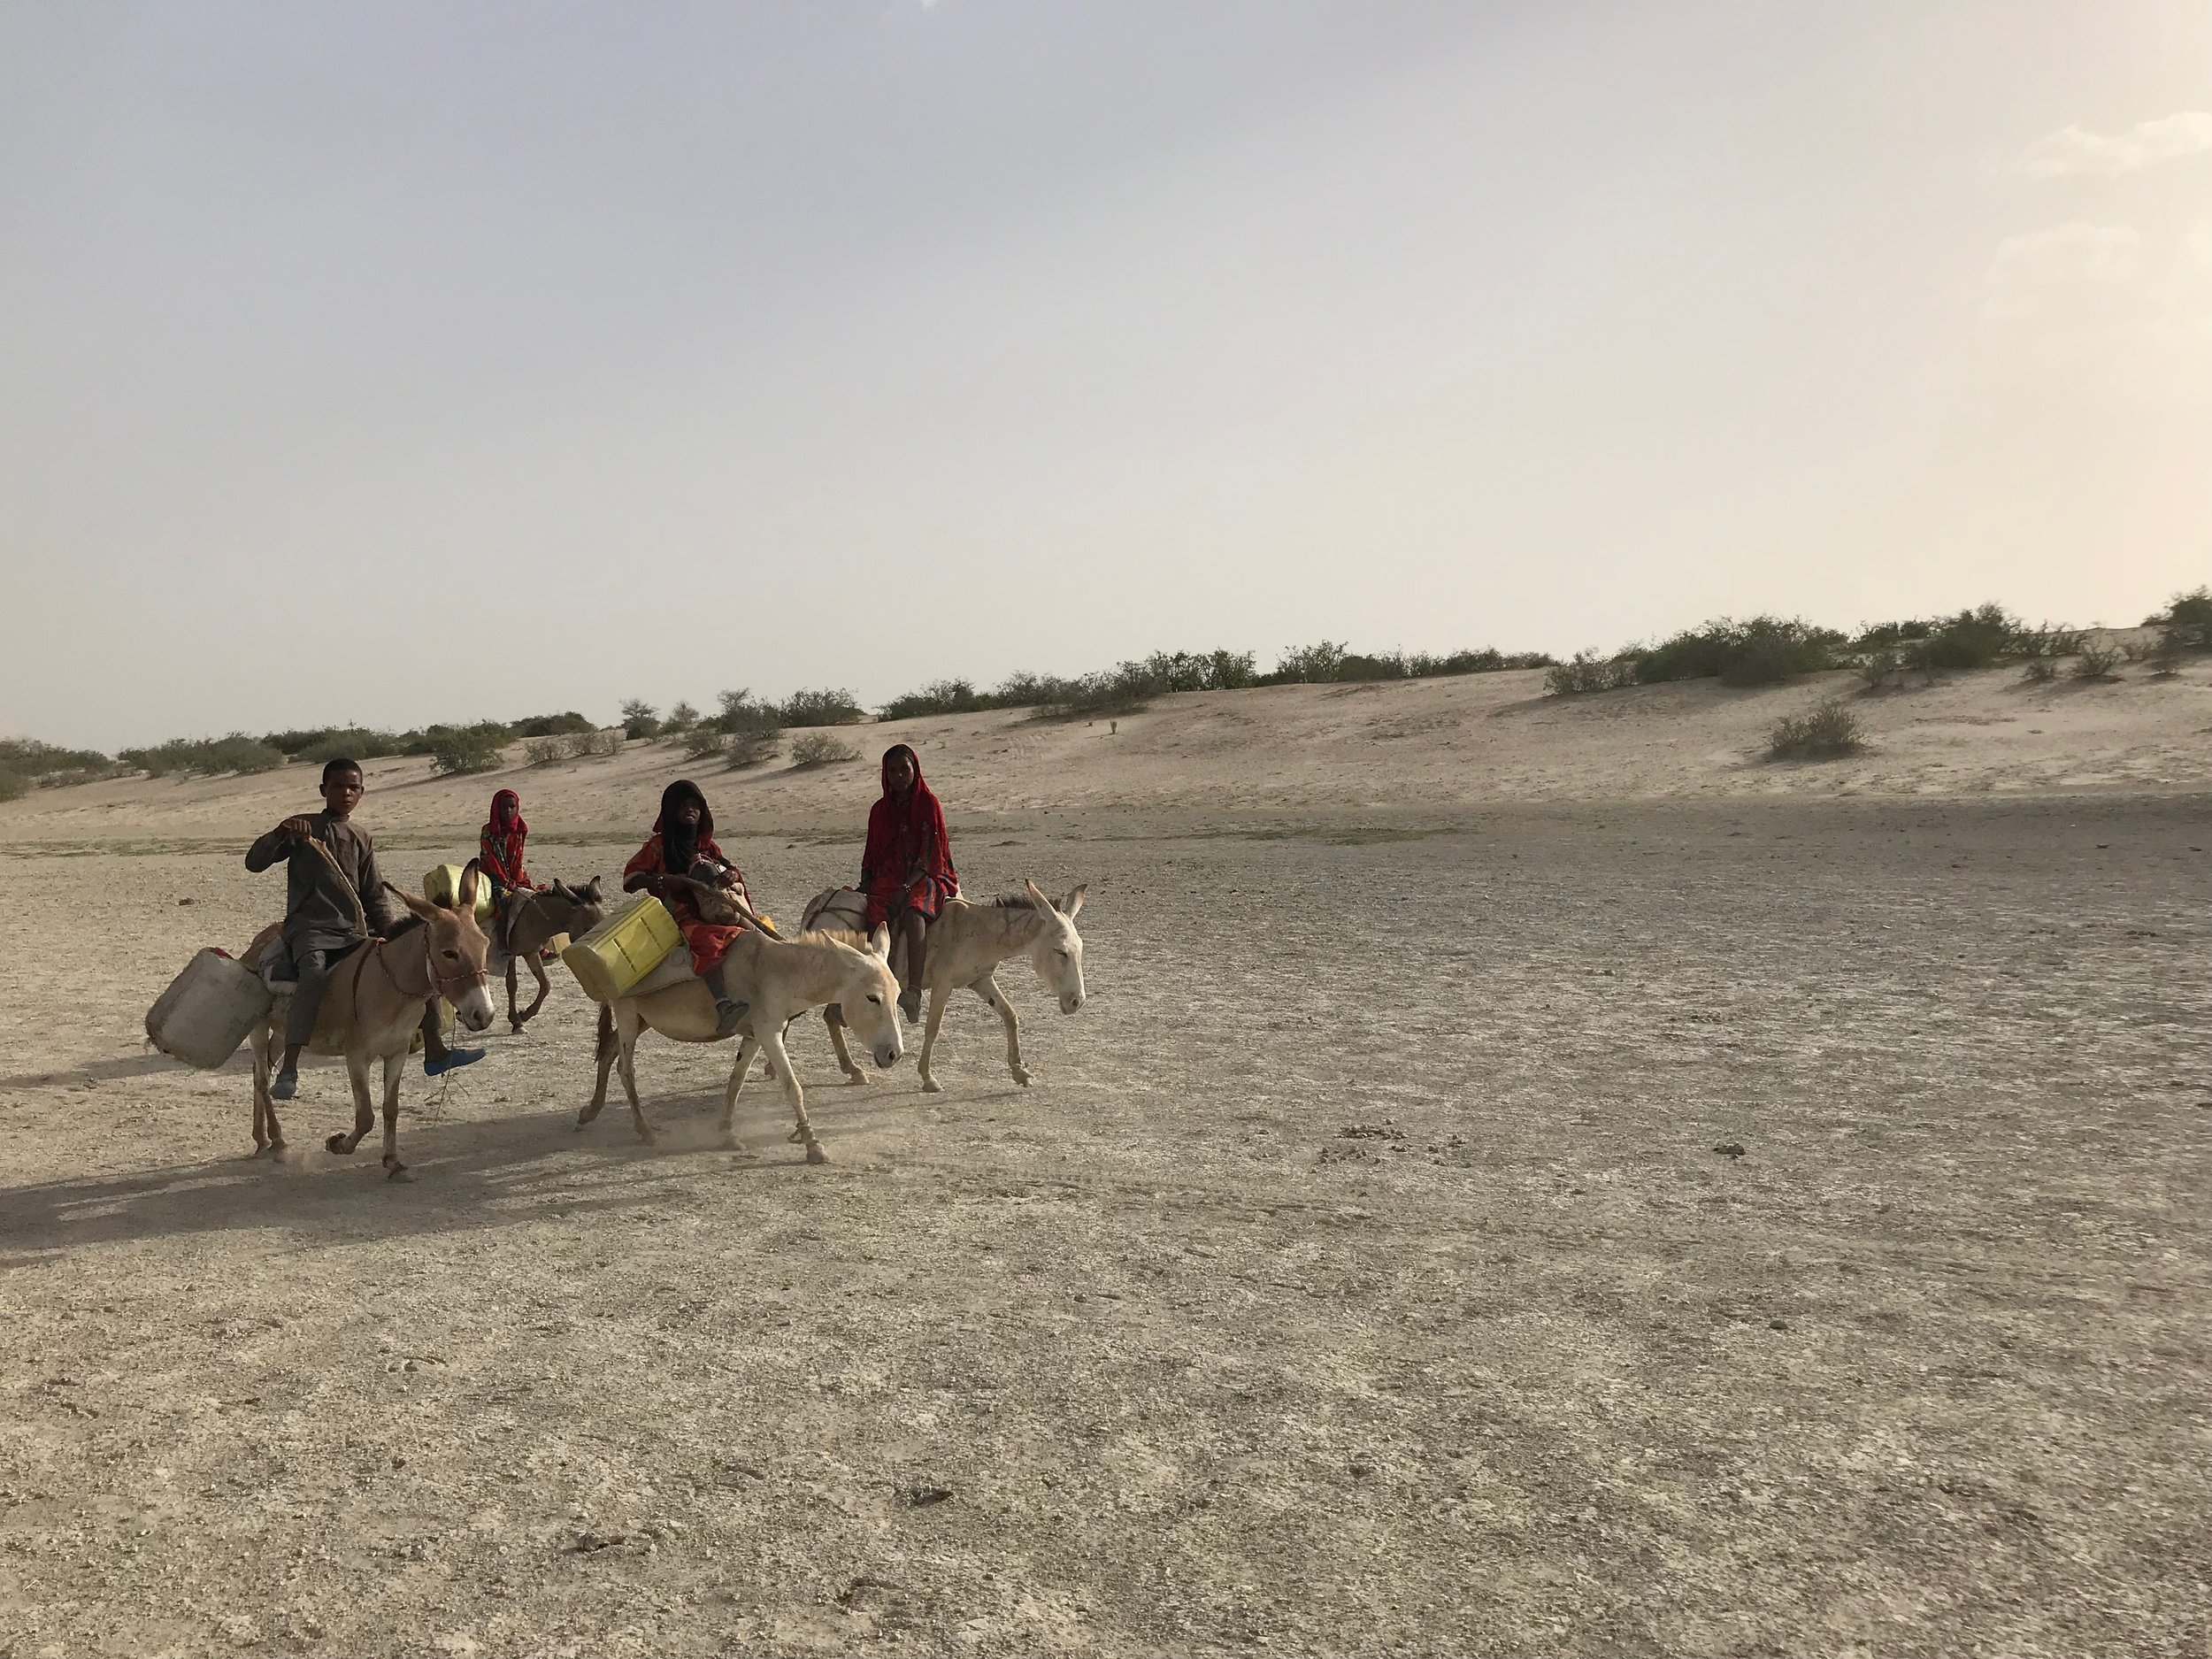 In Lake Chad area survival is an exercise anchored to life.